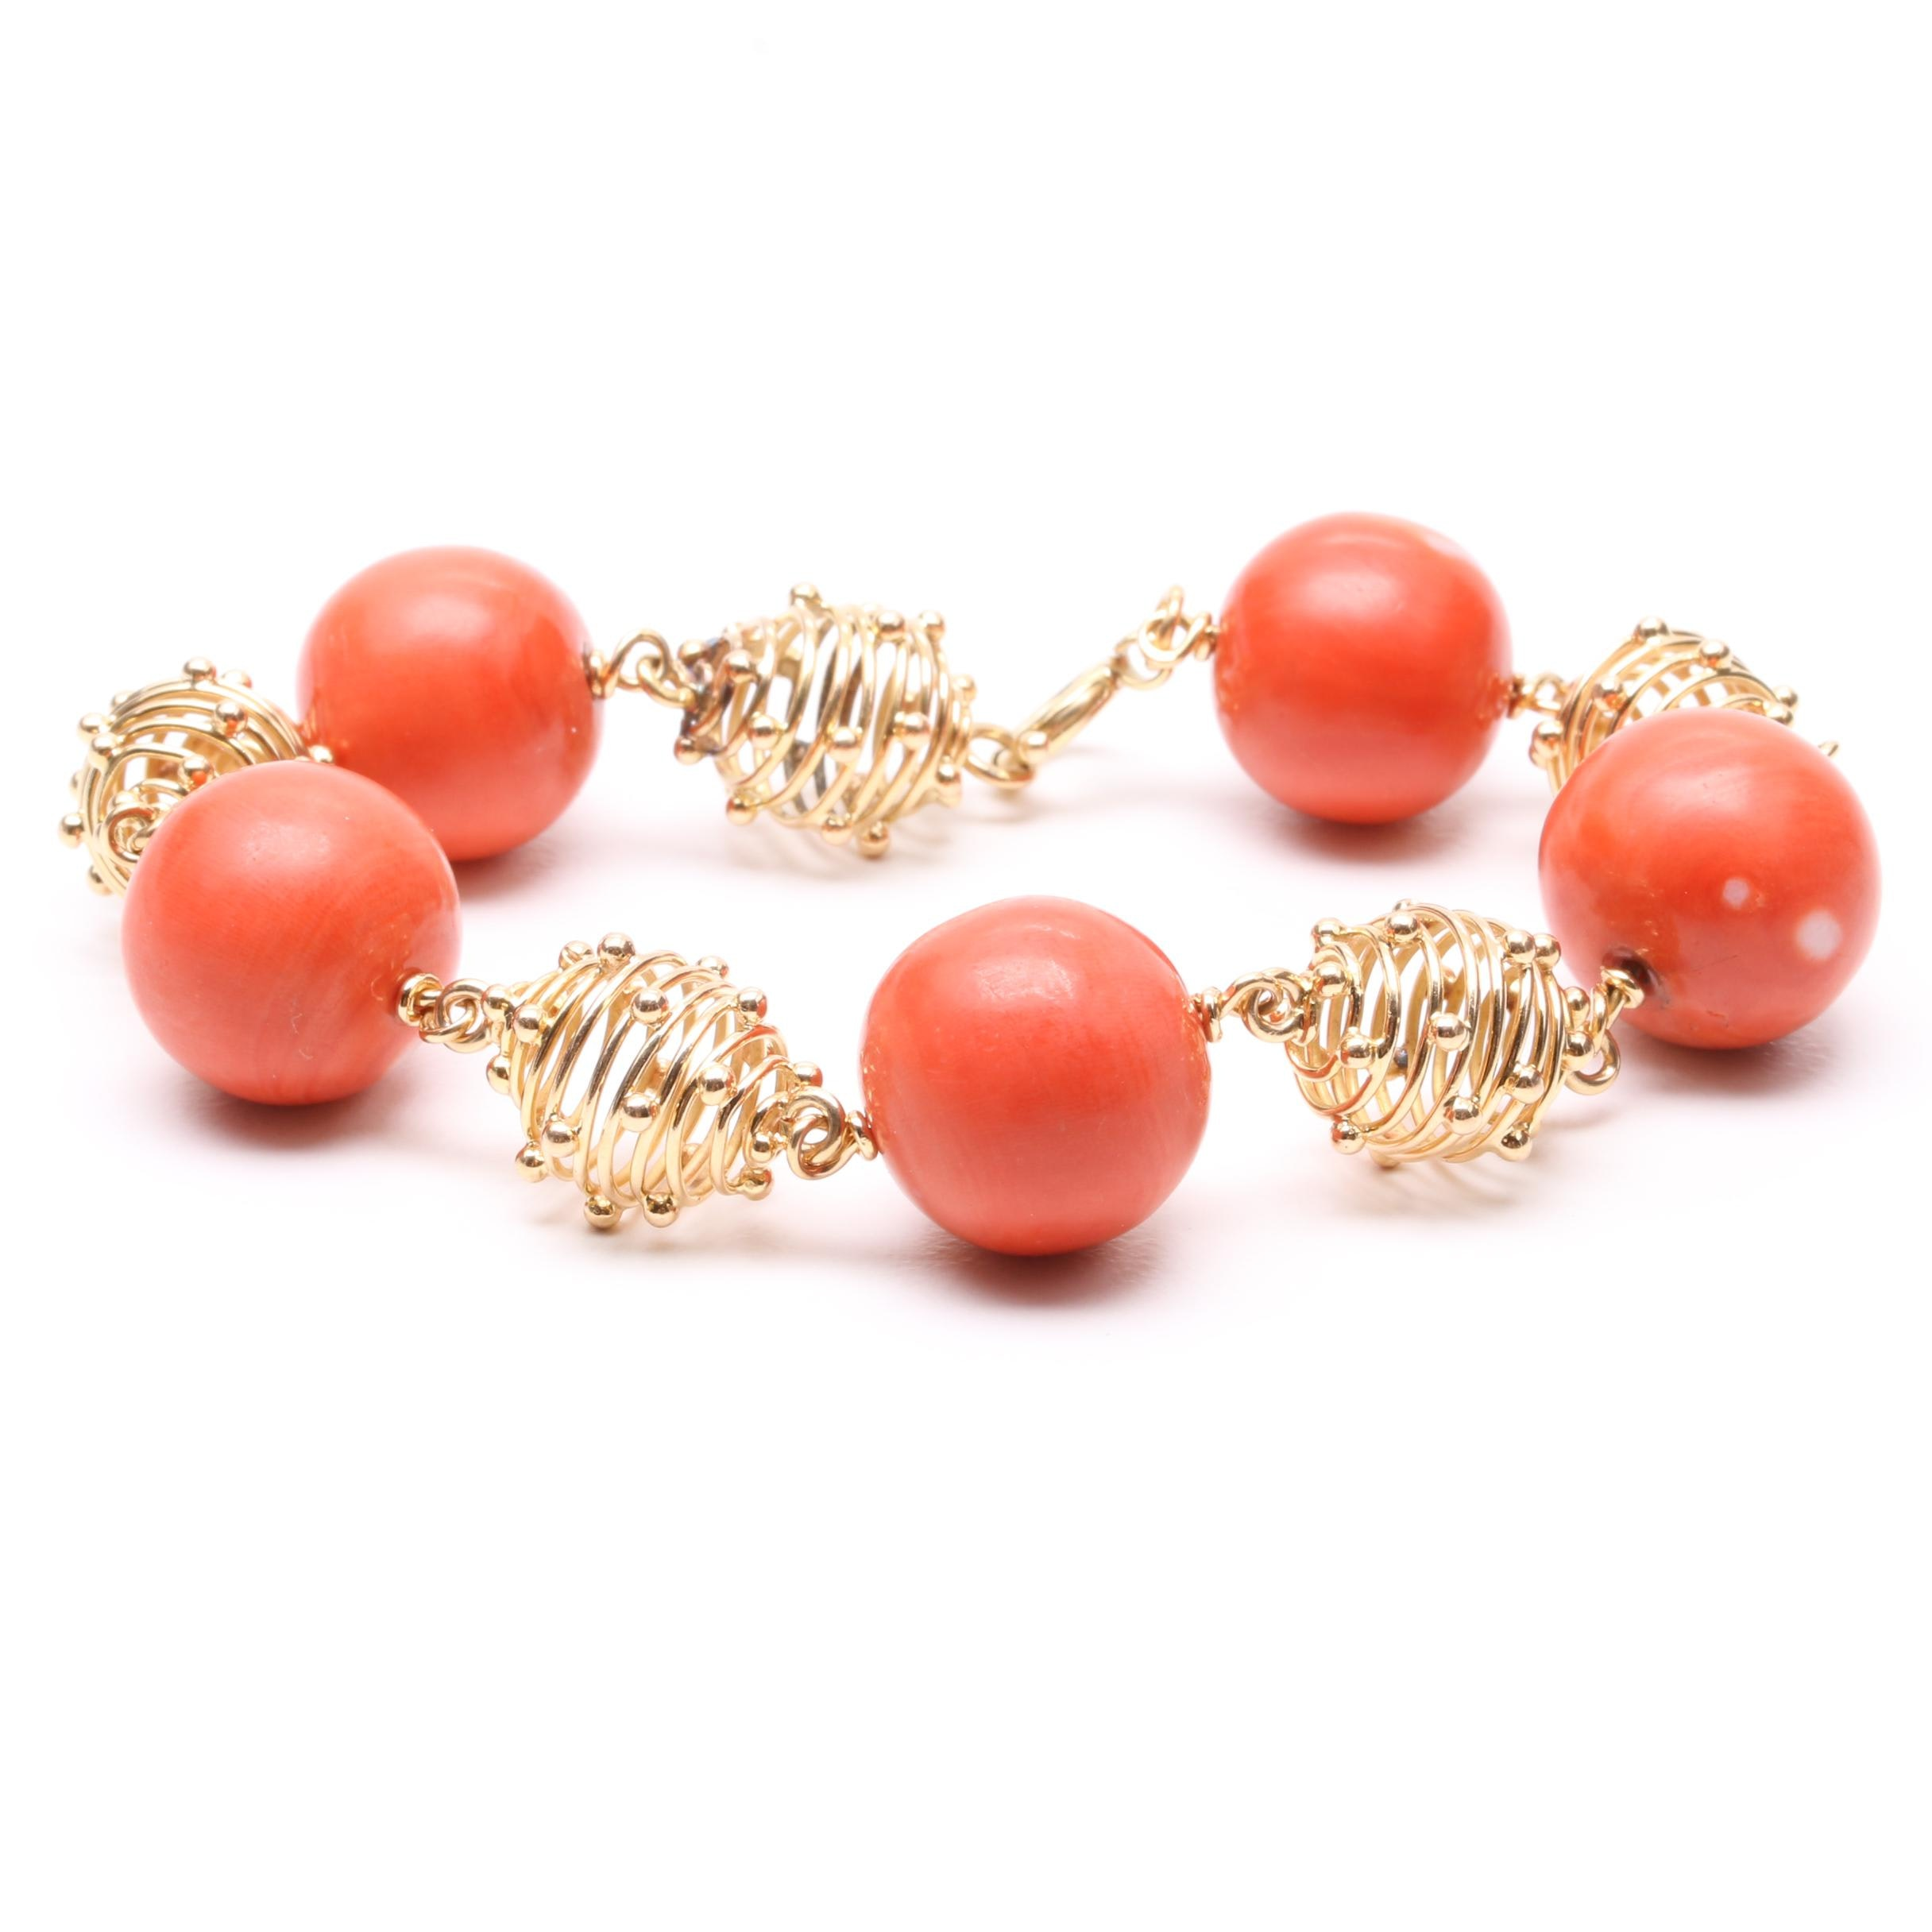 Vintage Austrian 18K Yellow Gold Coral Bracelet with 14K Findings